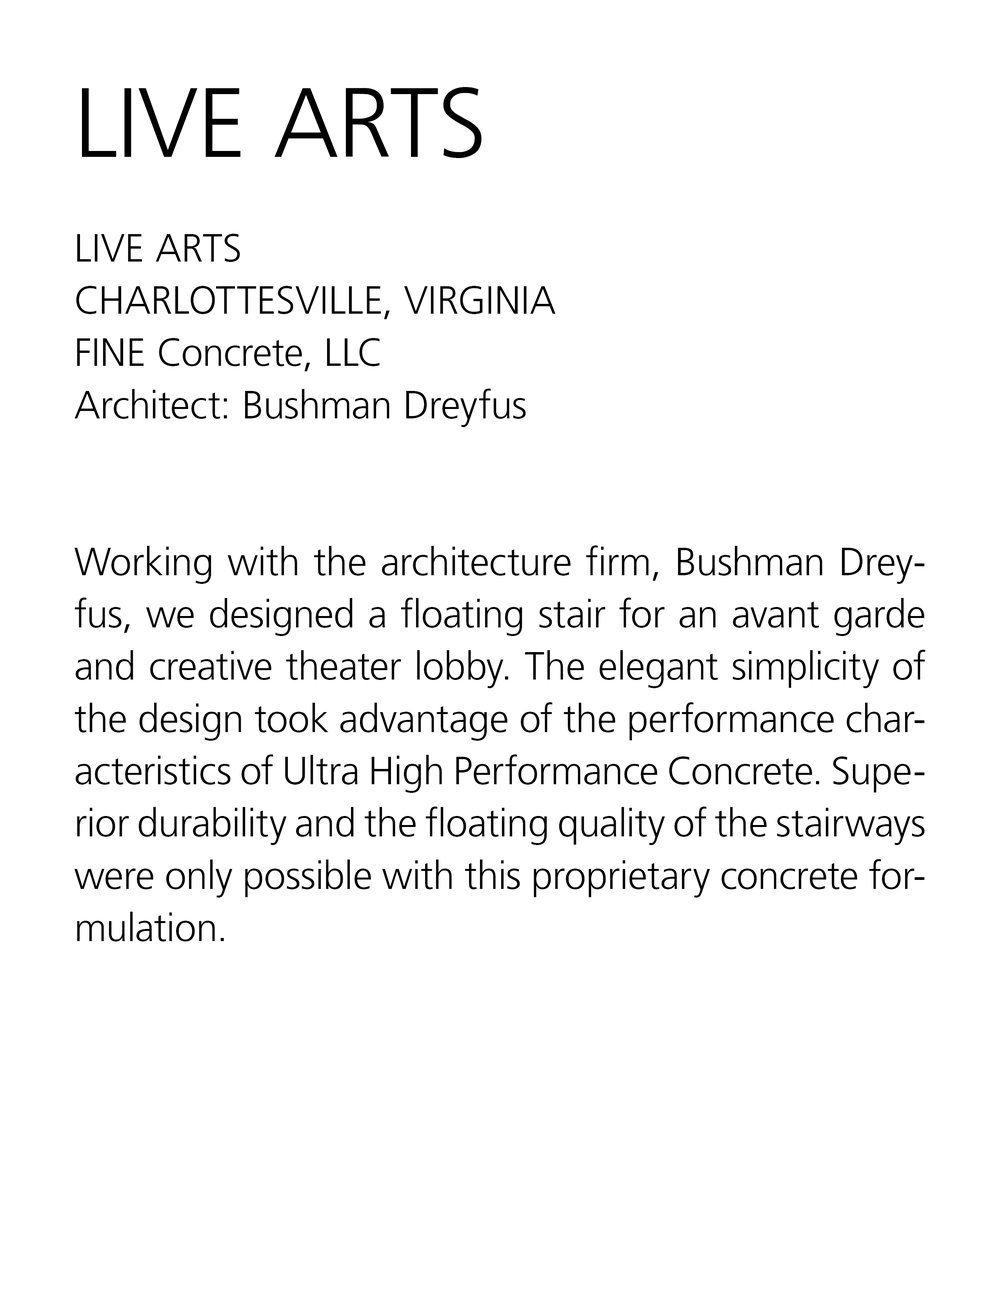 live arts description.jpg